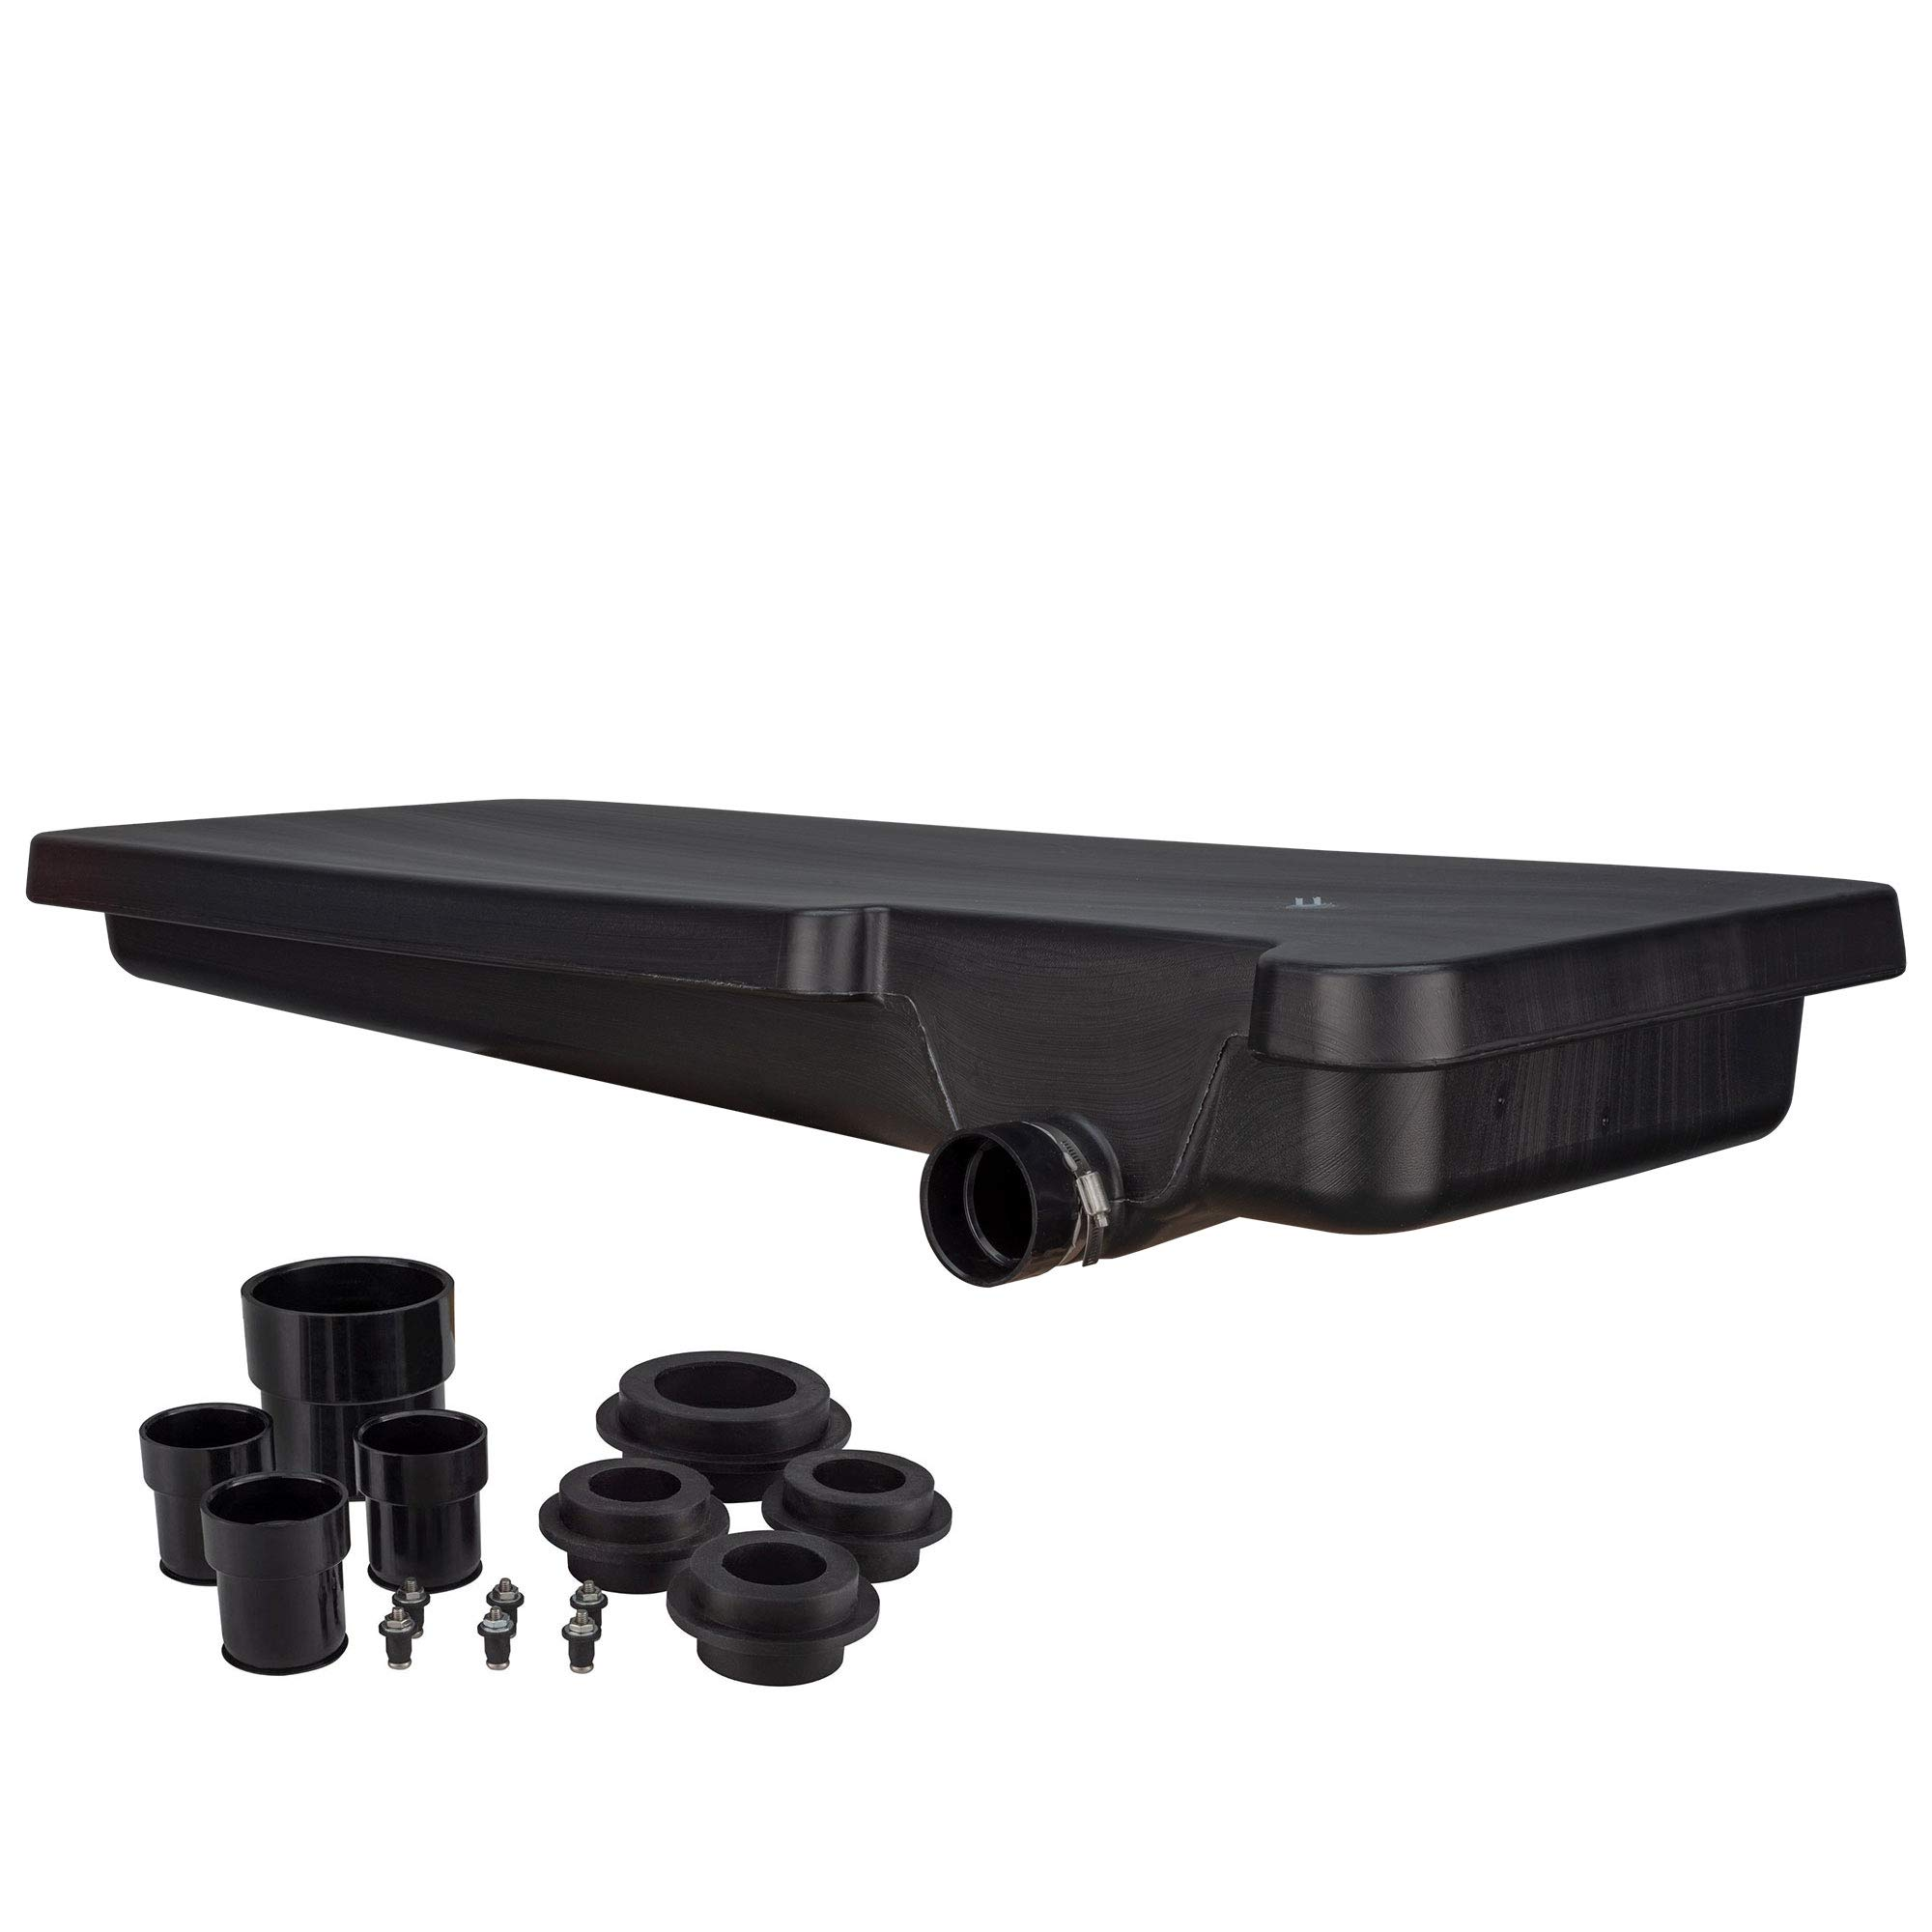 RecPro 44.5 Gallon Black Waste Water RV Holding Tank Right Side Drain 63'' x 25'' x 9 1/8'' | Fitting Kit Included by RecPro